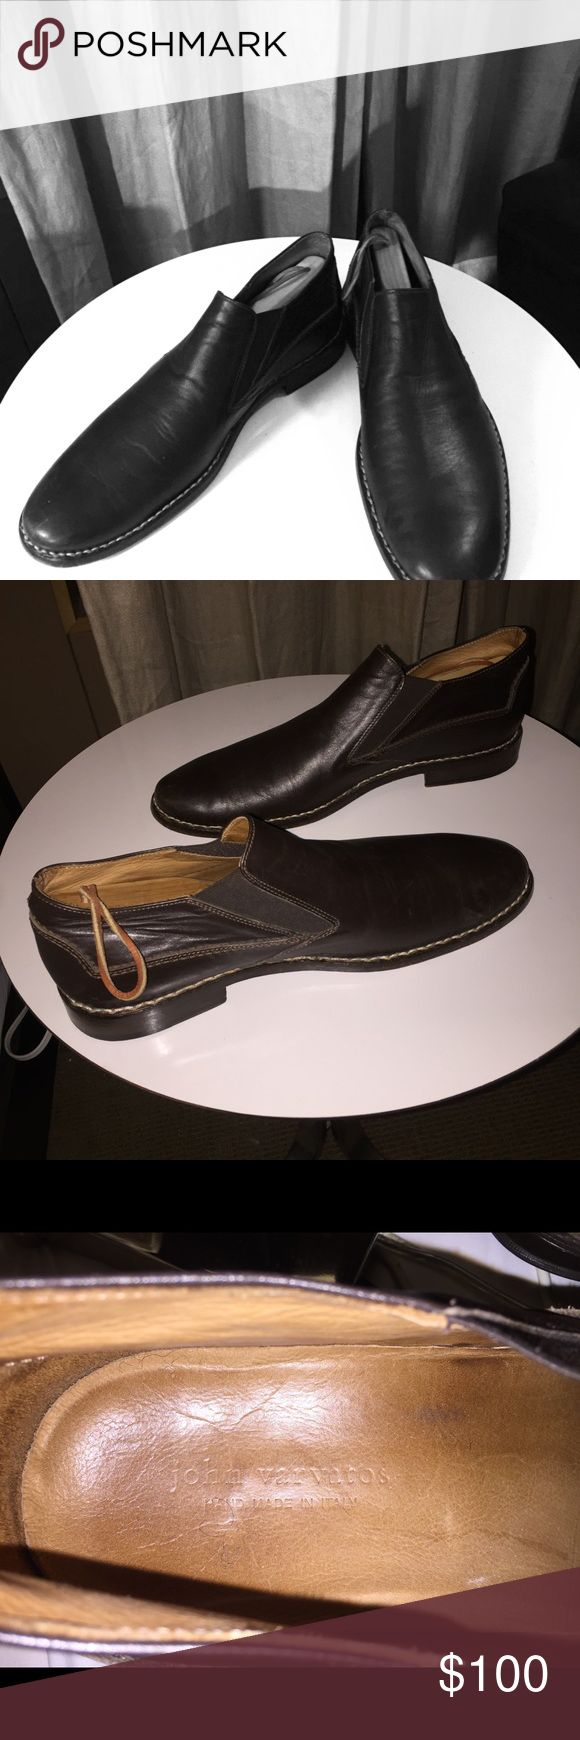 Brown John Varvatos hand made leather soled shoes Excellent condition (worn 3 times) amazingly comfortable Italian hand made slip ons with a leather sole. John Varvatos Shoes Loafers & Slip-Ons